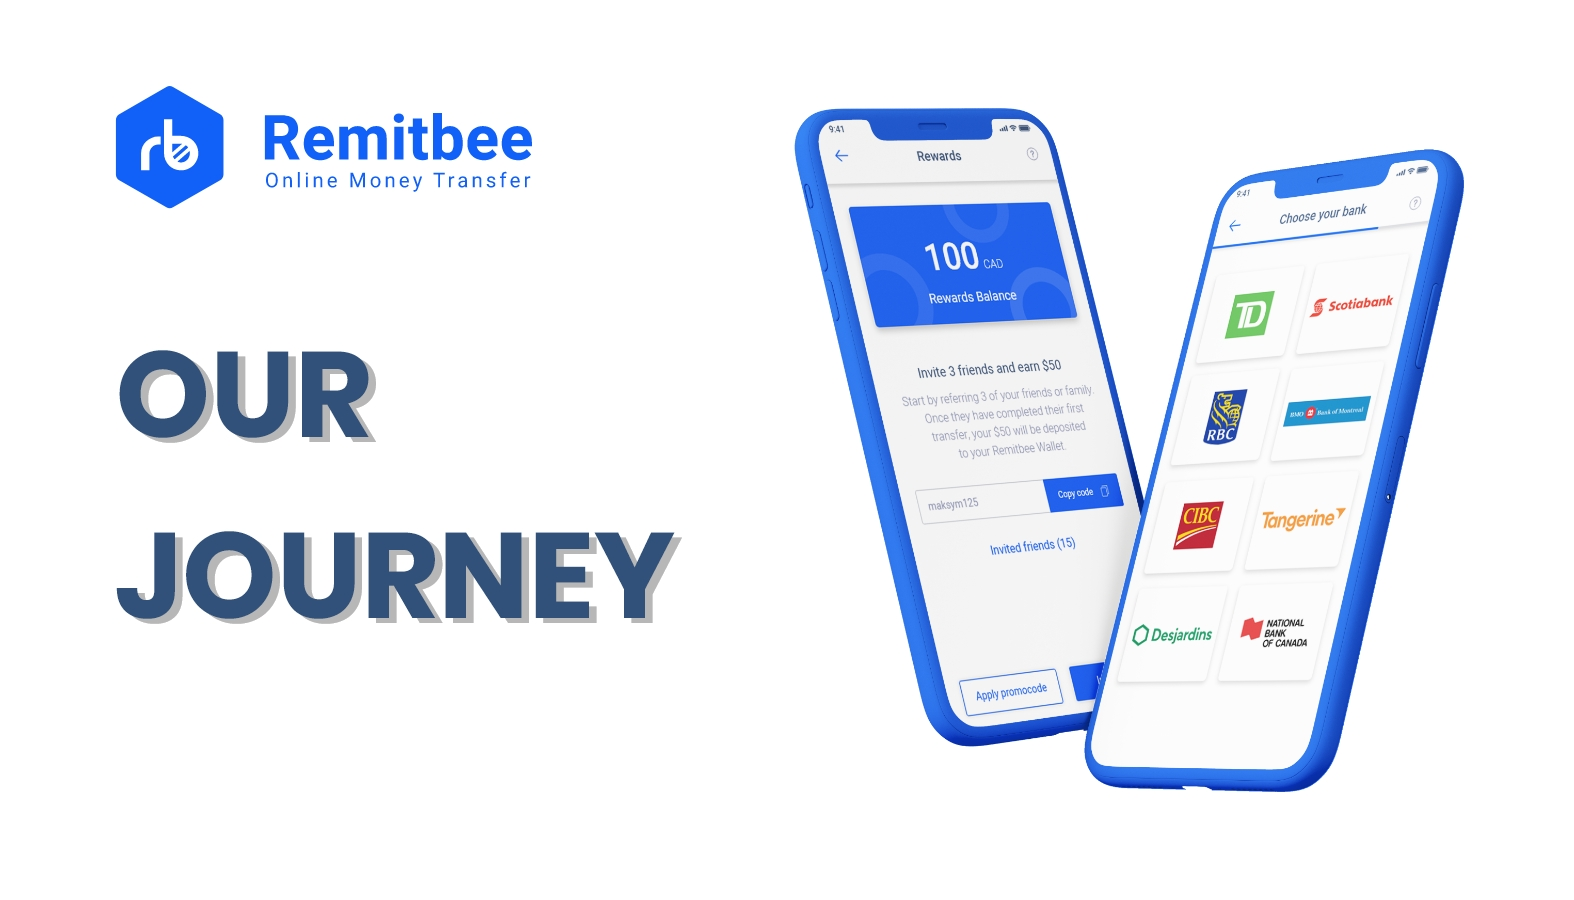 Becoming One Of The Leading FinTech Companies In Toronto: The Journey Of Remitbee